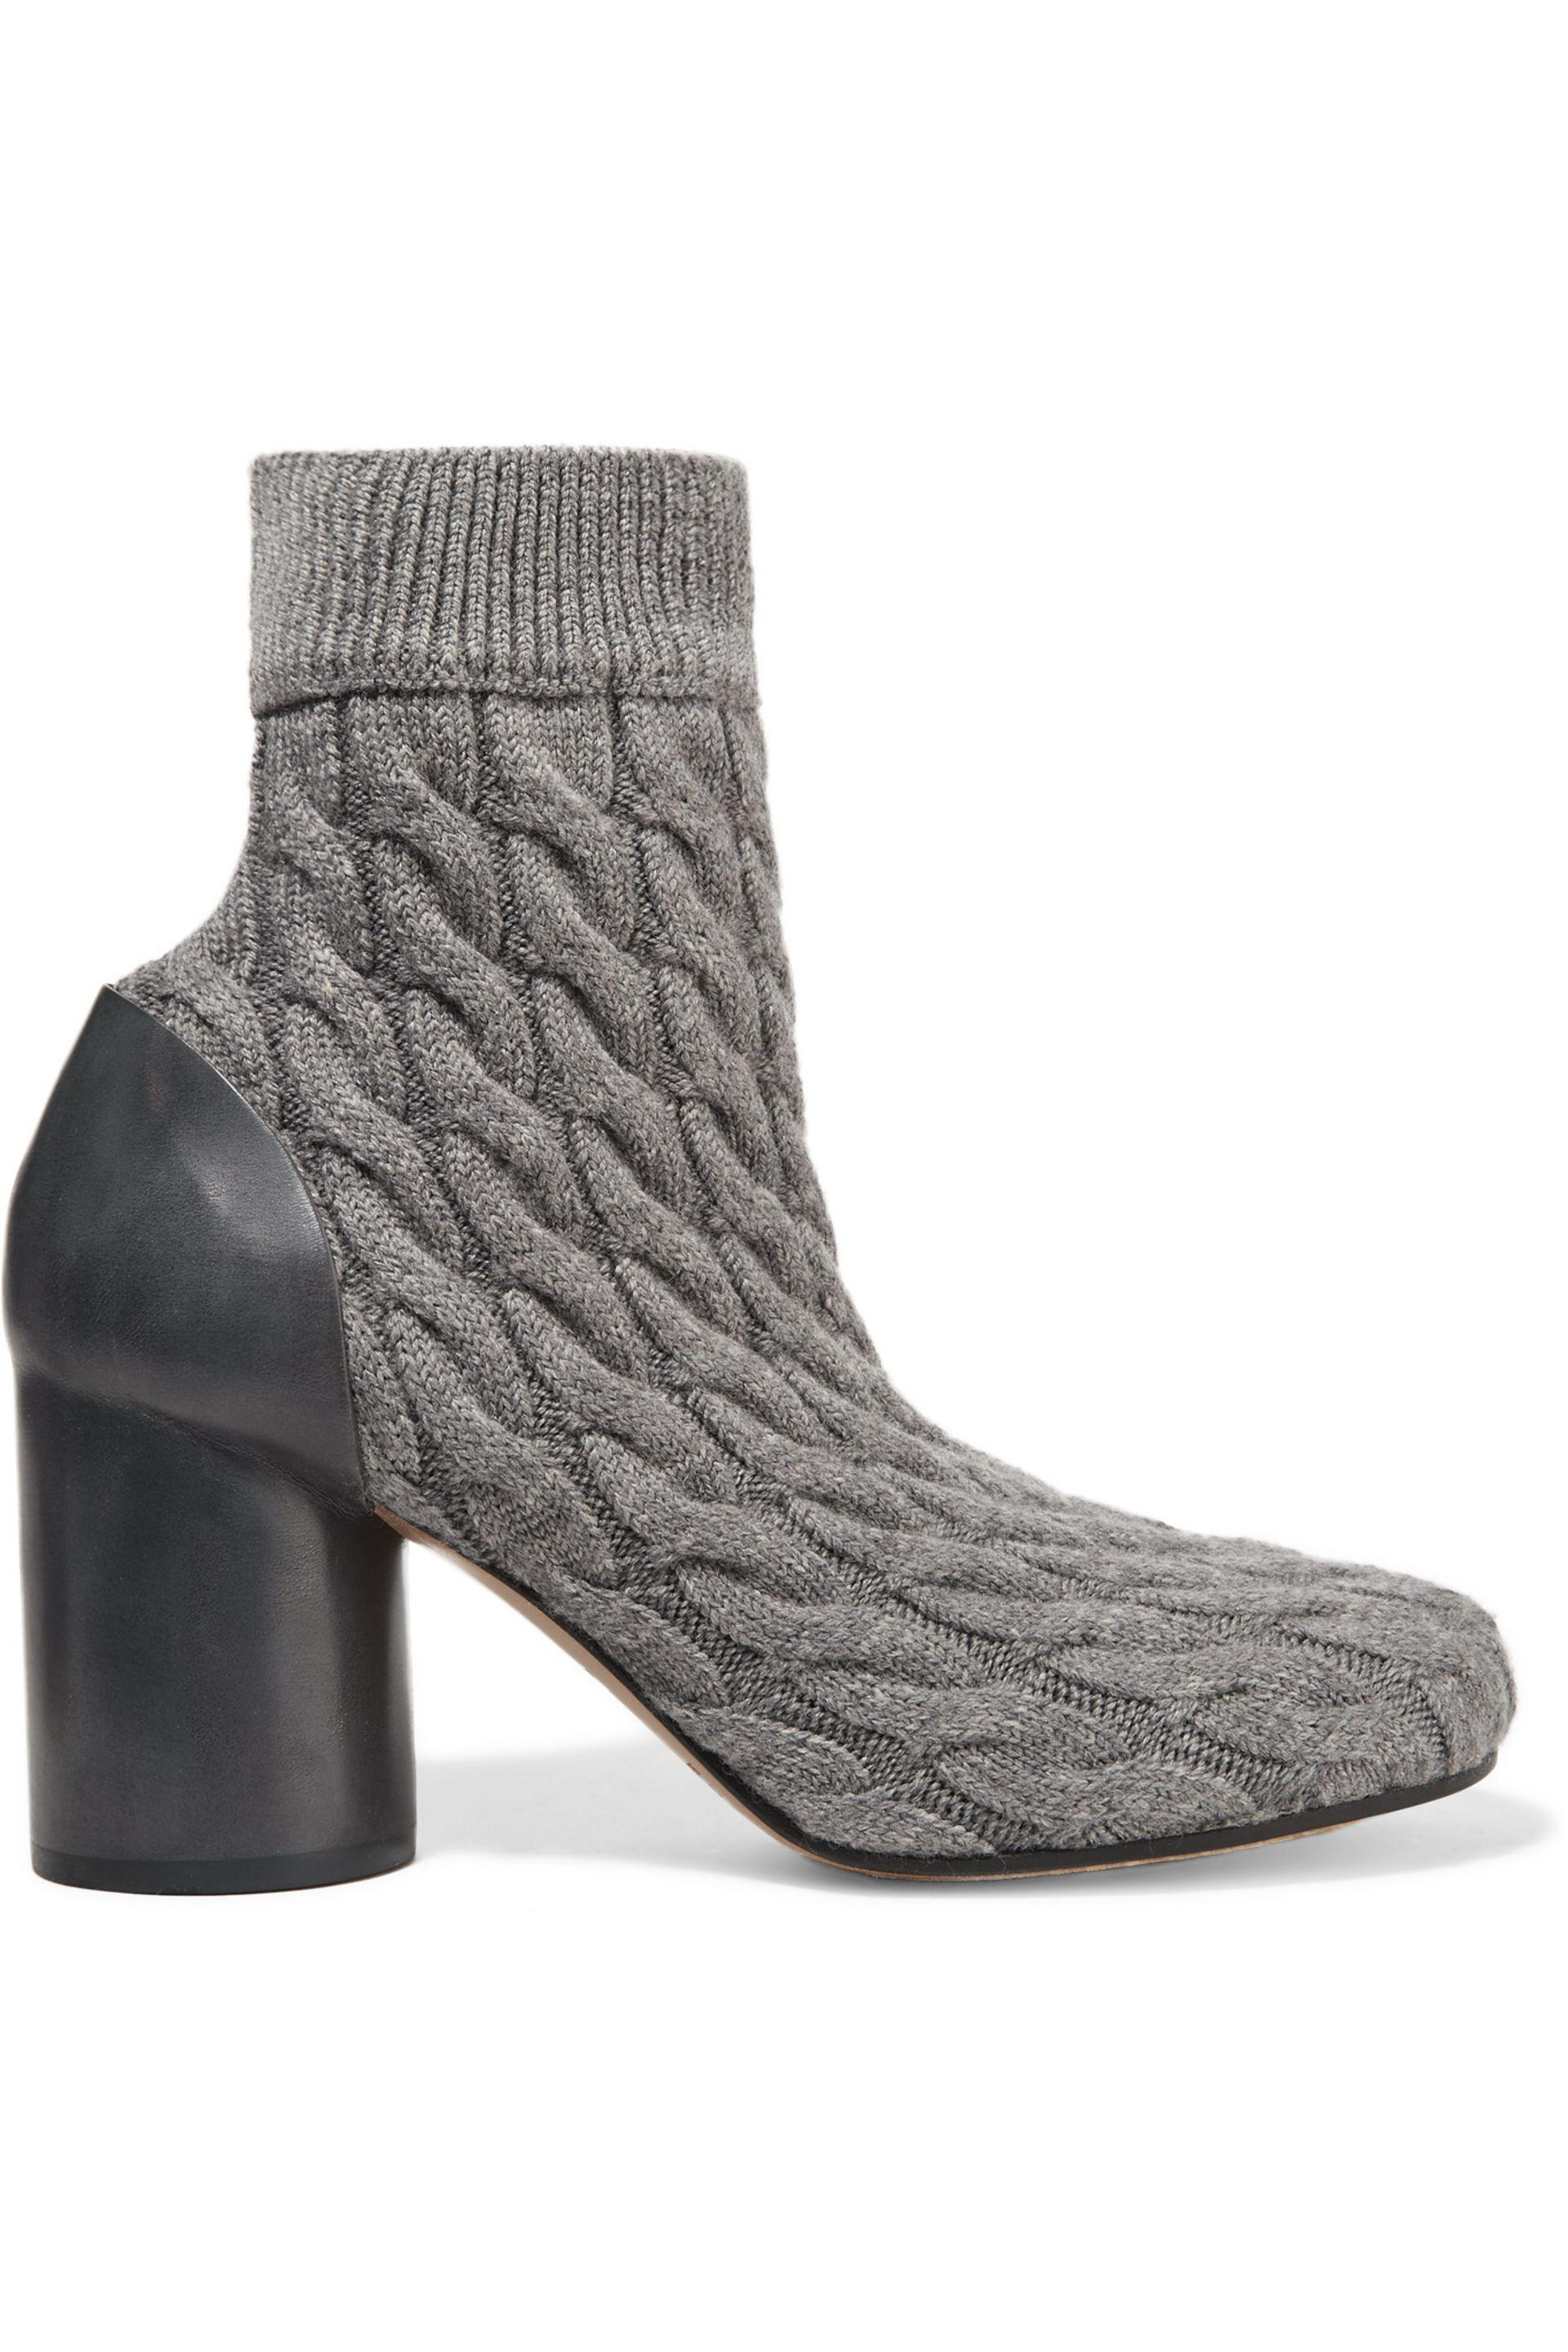 Maison Margiela Cable Knit Sock Ankle Boots w/ Tags cheap latest cheap sale limited edition sale the cheapest clearance shopping online iZ29W